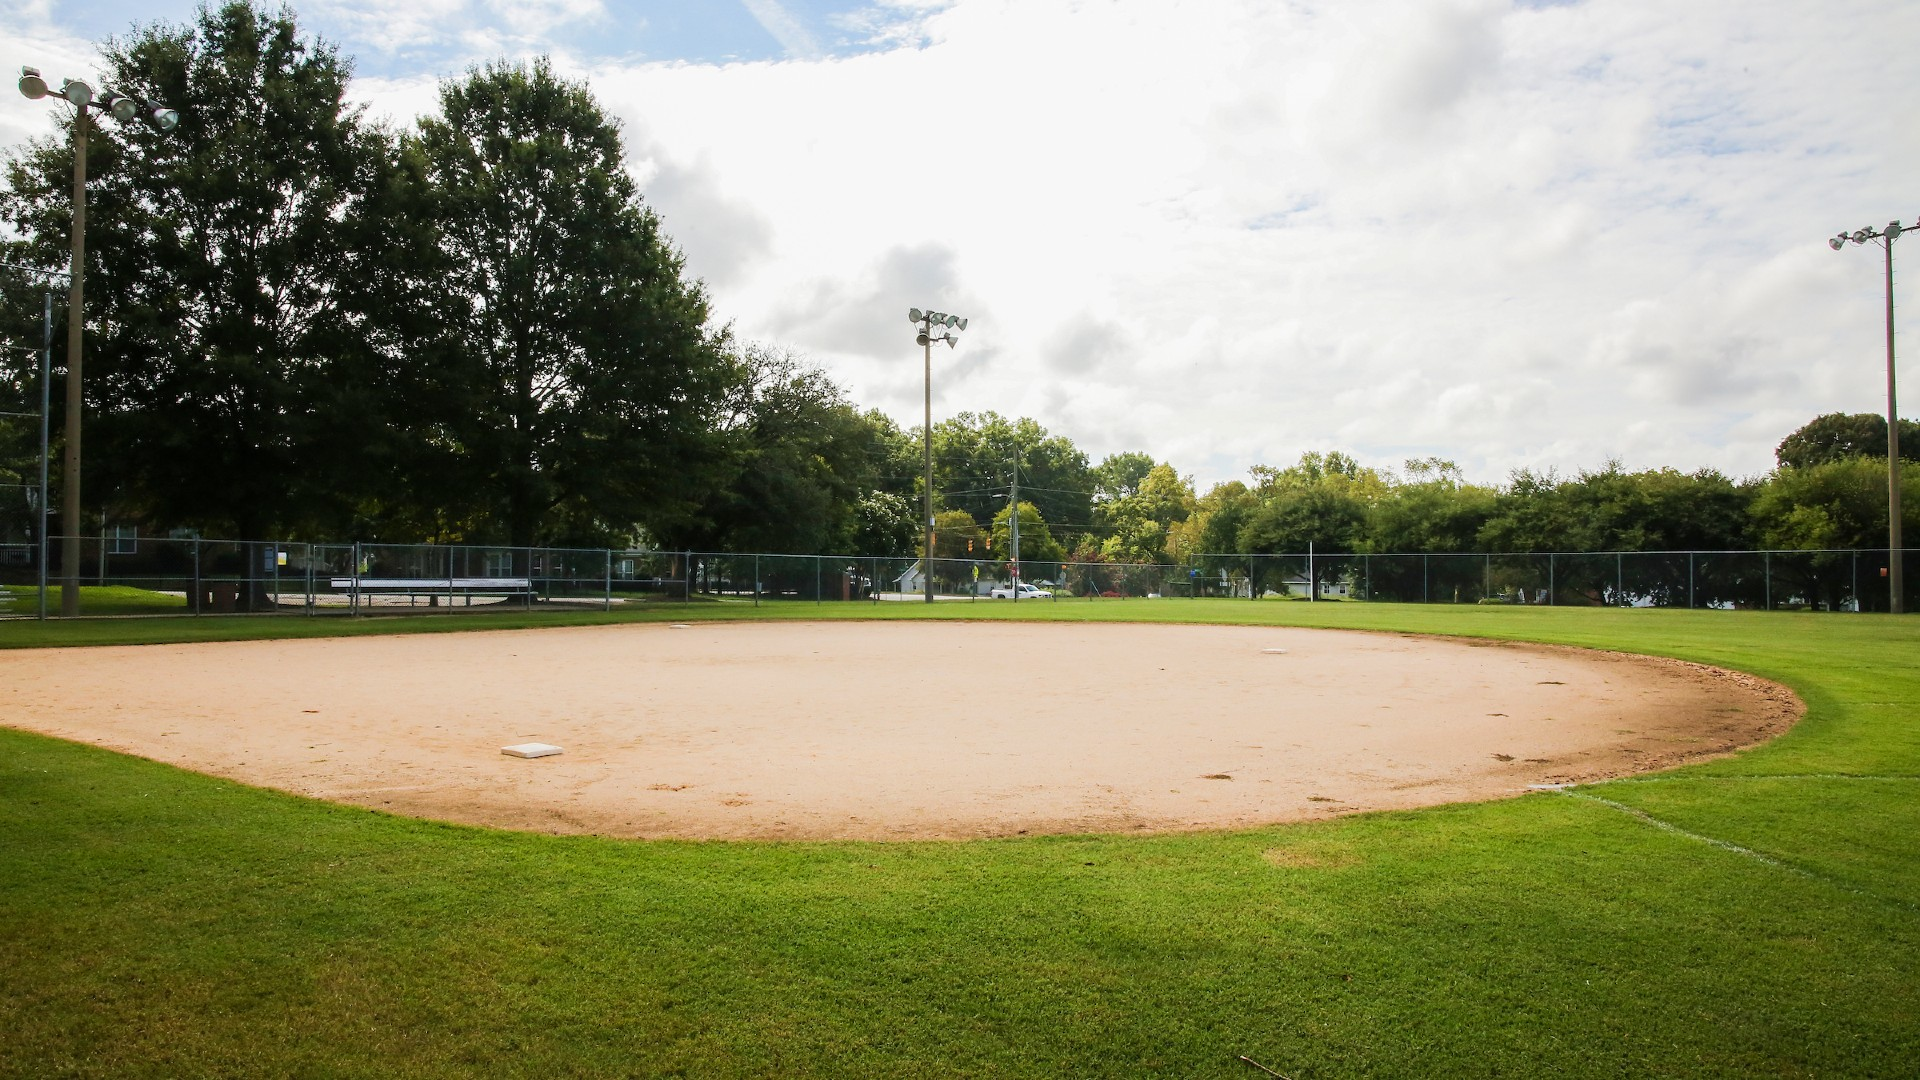 dirt baseball field surround by grass outfield and lights at chavis park